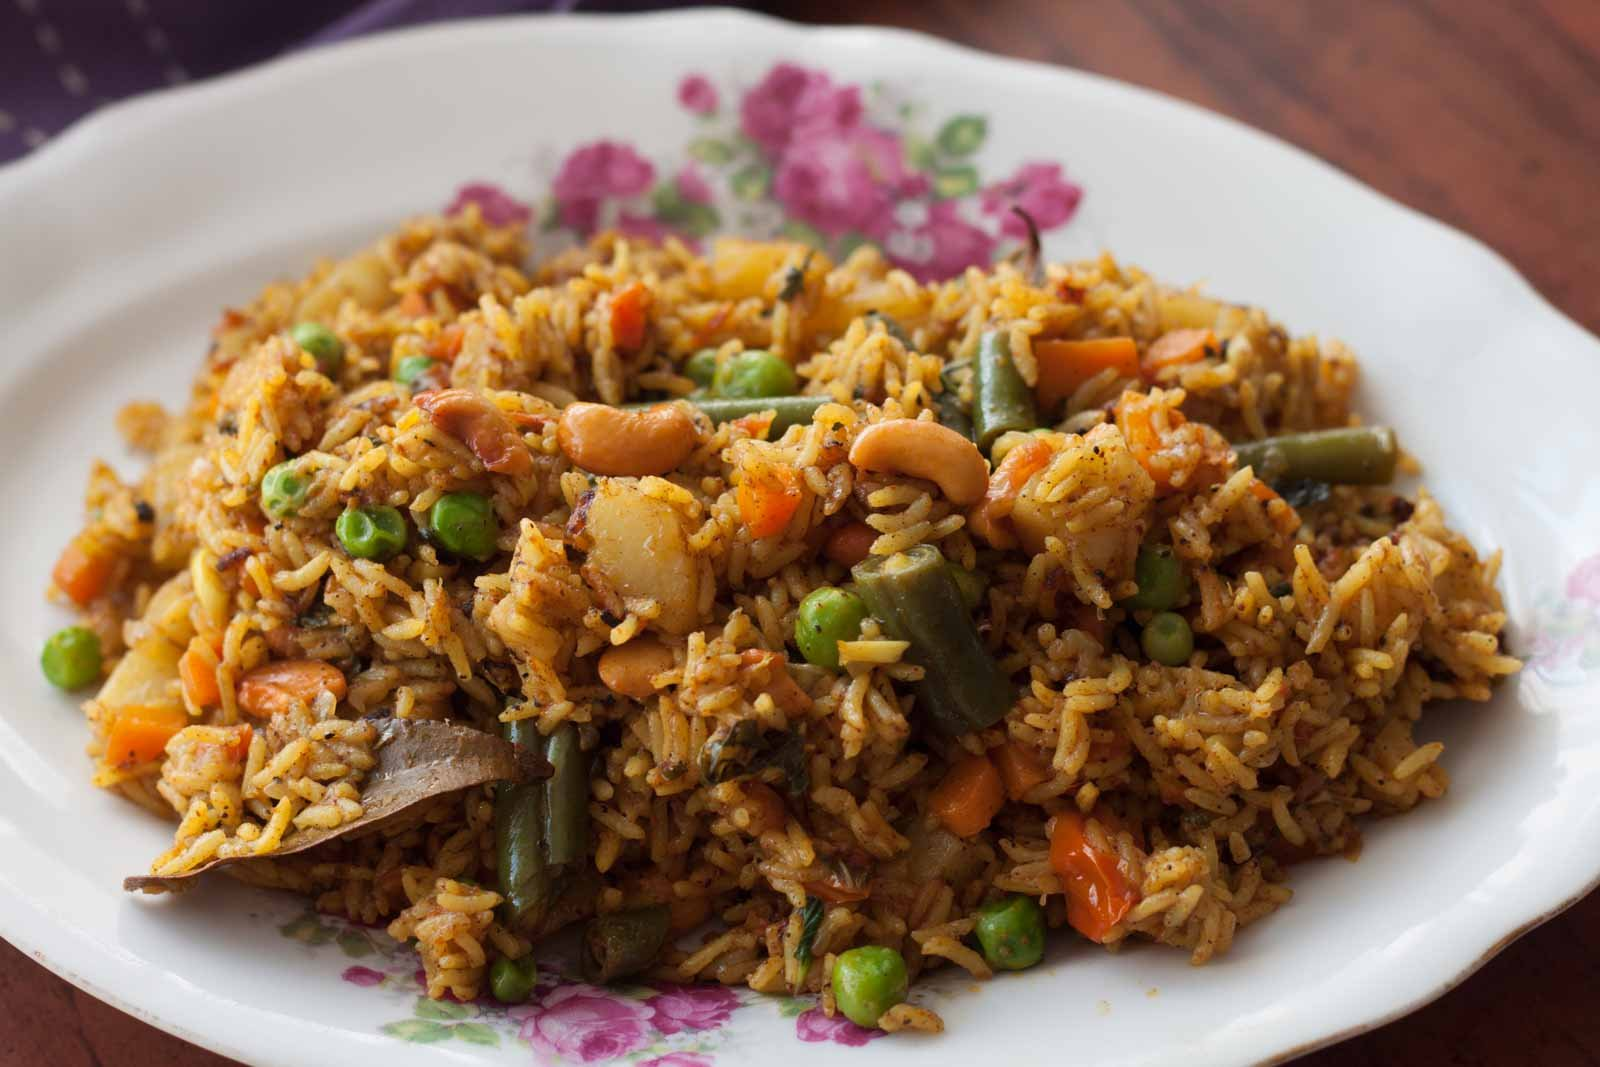 Chettinad vegetable biryani recipe by archanas kitchen chettinad vegetable biryani recipe forumfinder Gallery